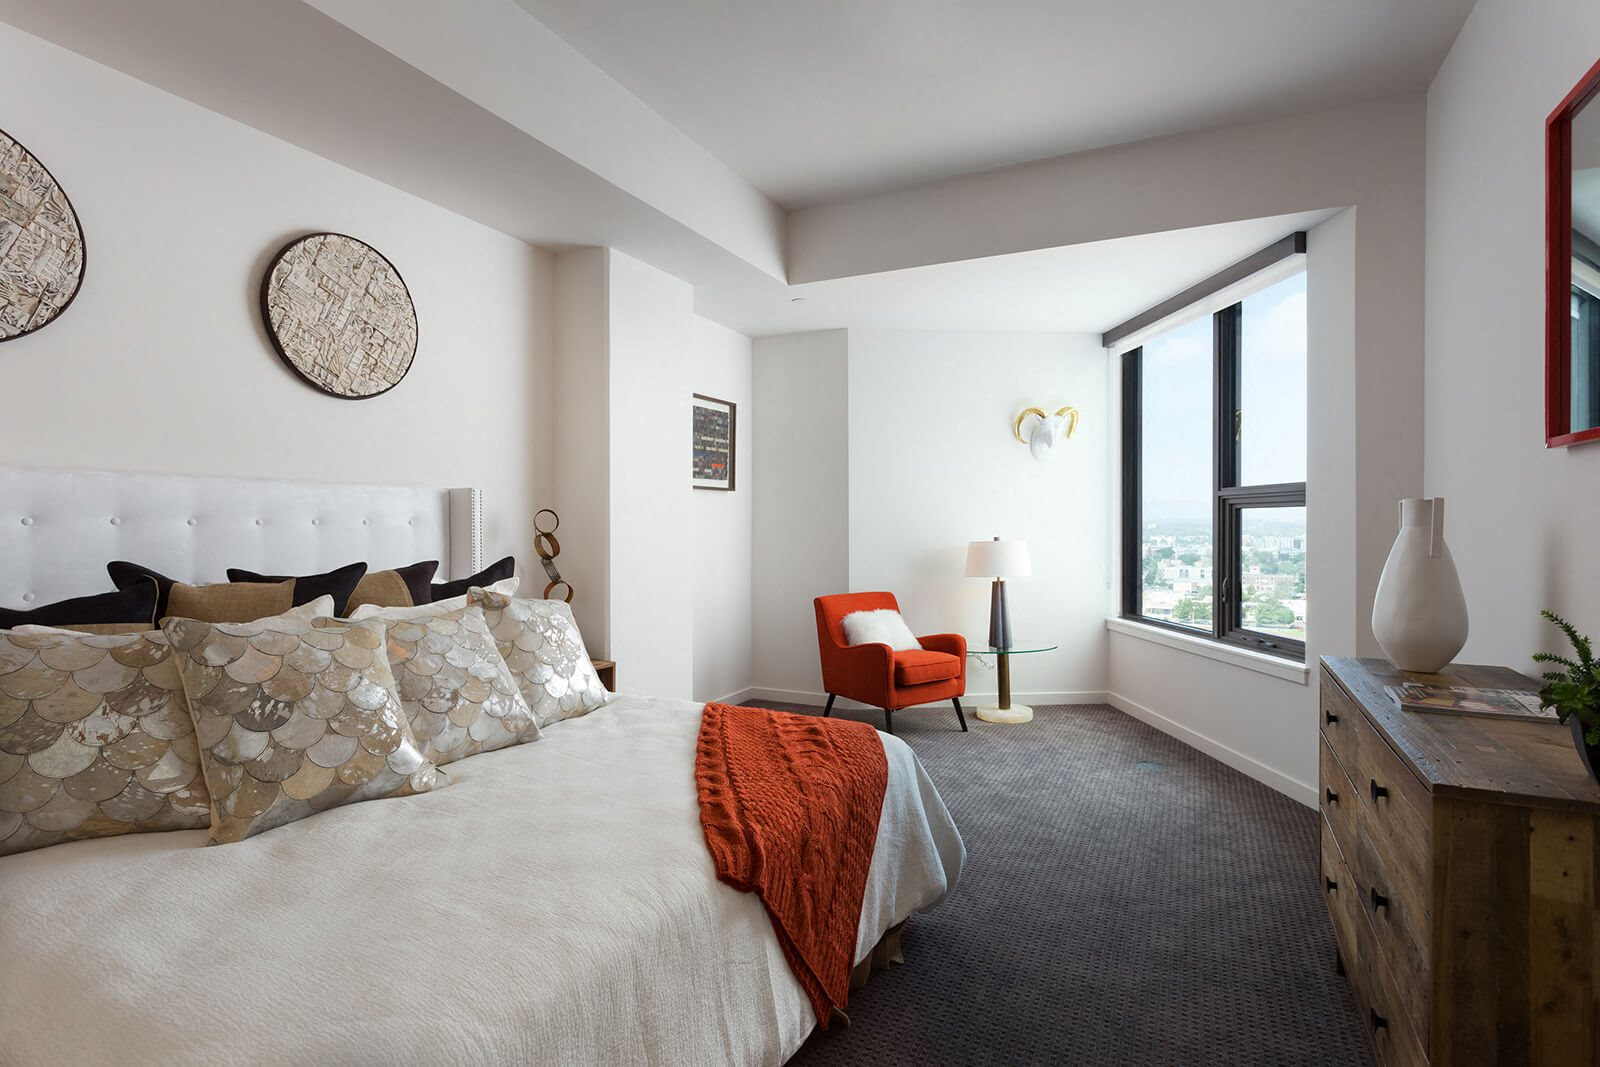 Plush Carpeting in Bedrooms at 1000 Speer by Windsor, Denver, Colorado